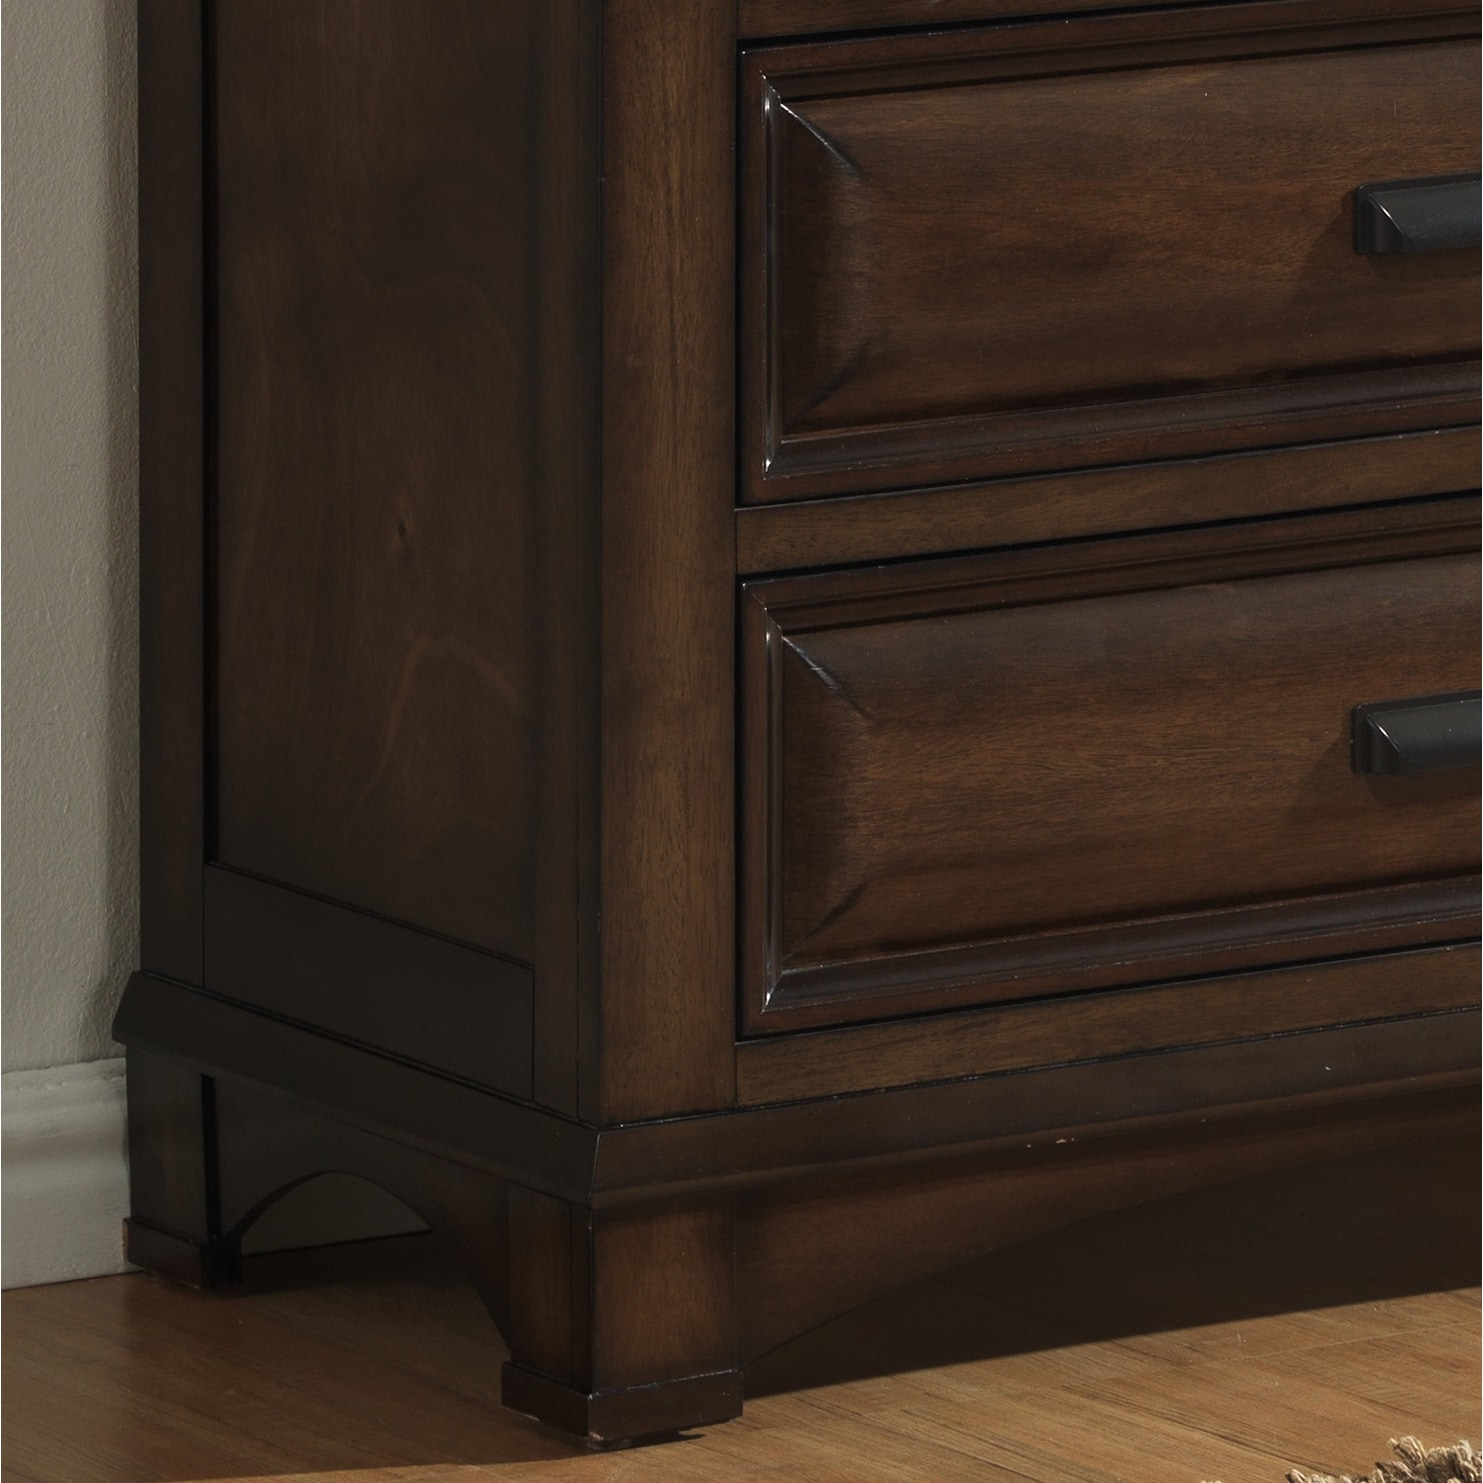 Shop roundhill furniture broval 179 light espresso finish wood 2 drawers night stand free shipping today overstock com 12594284